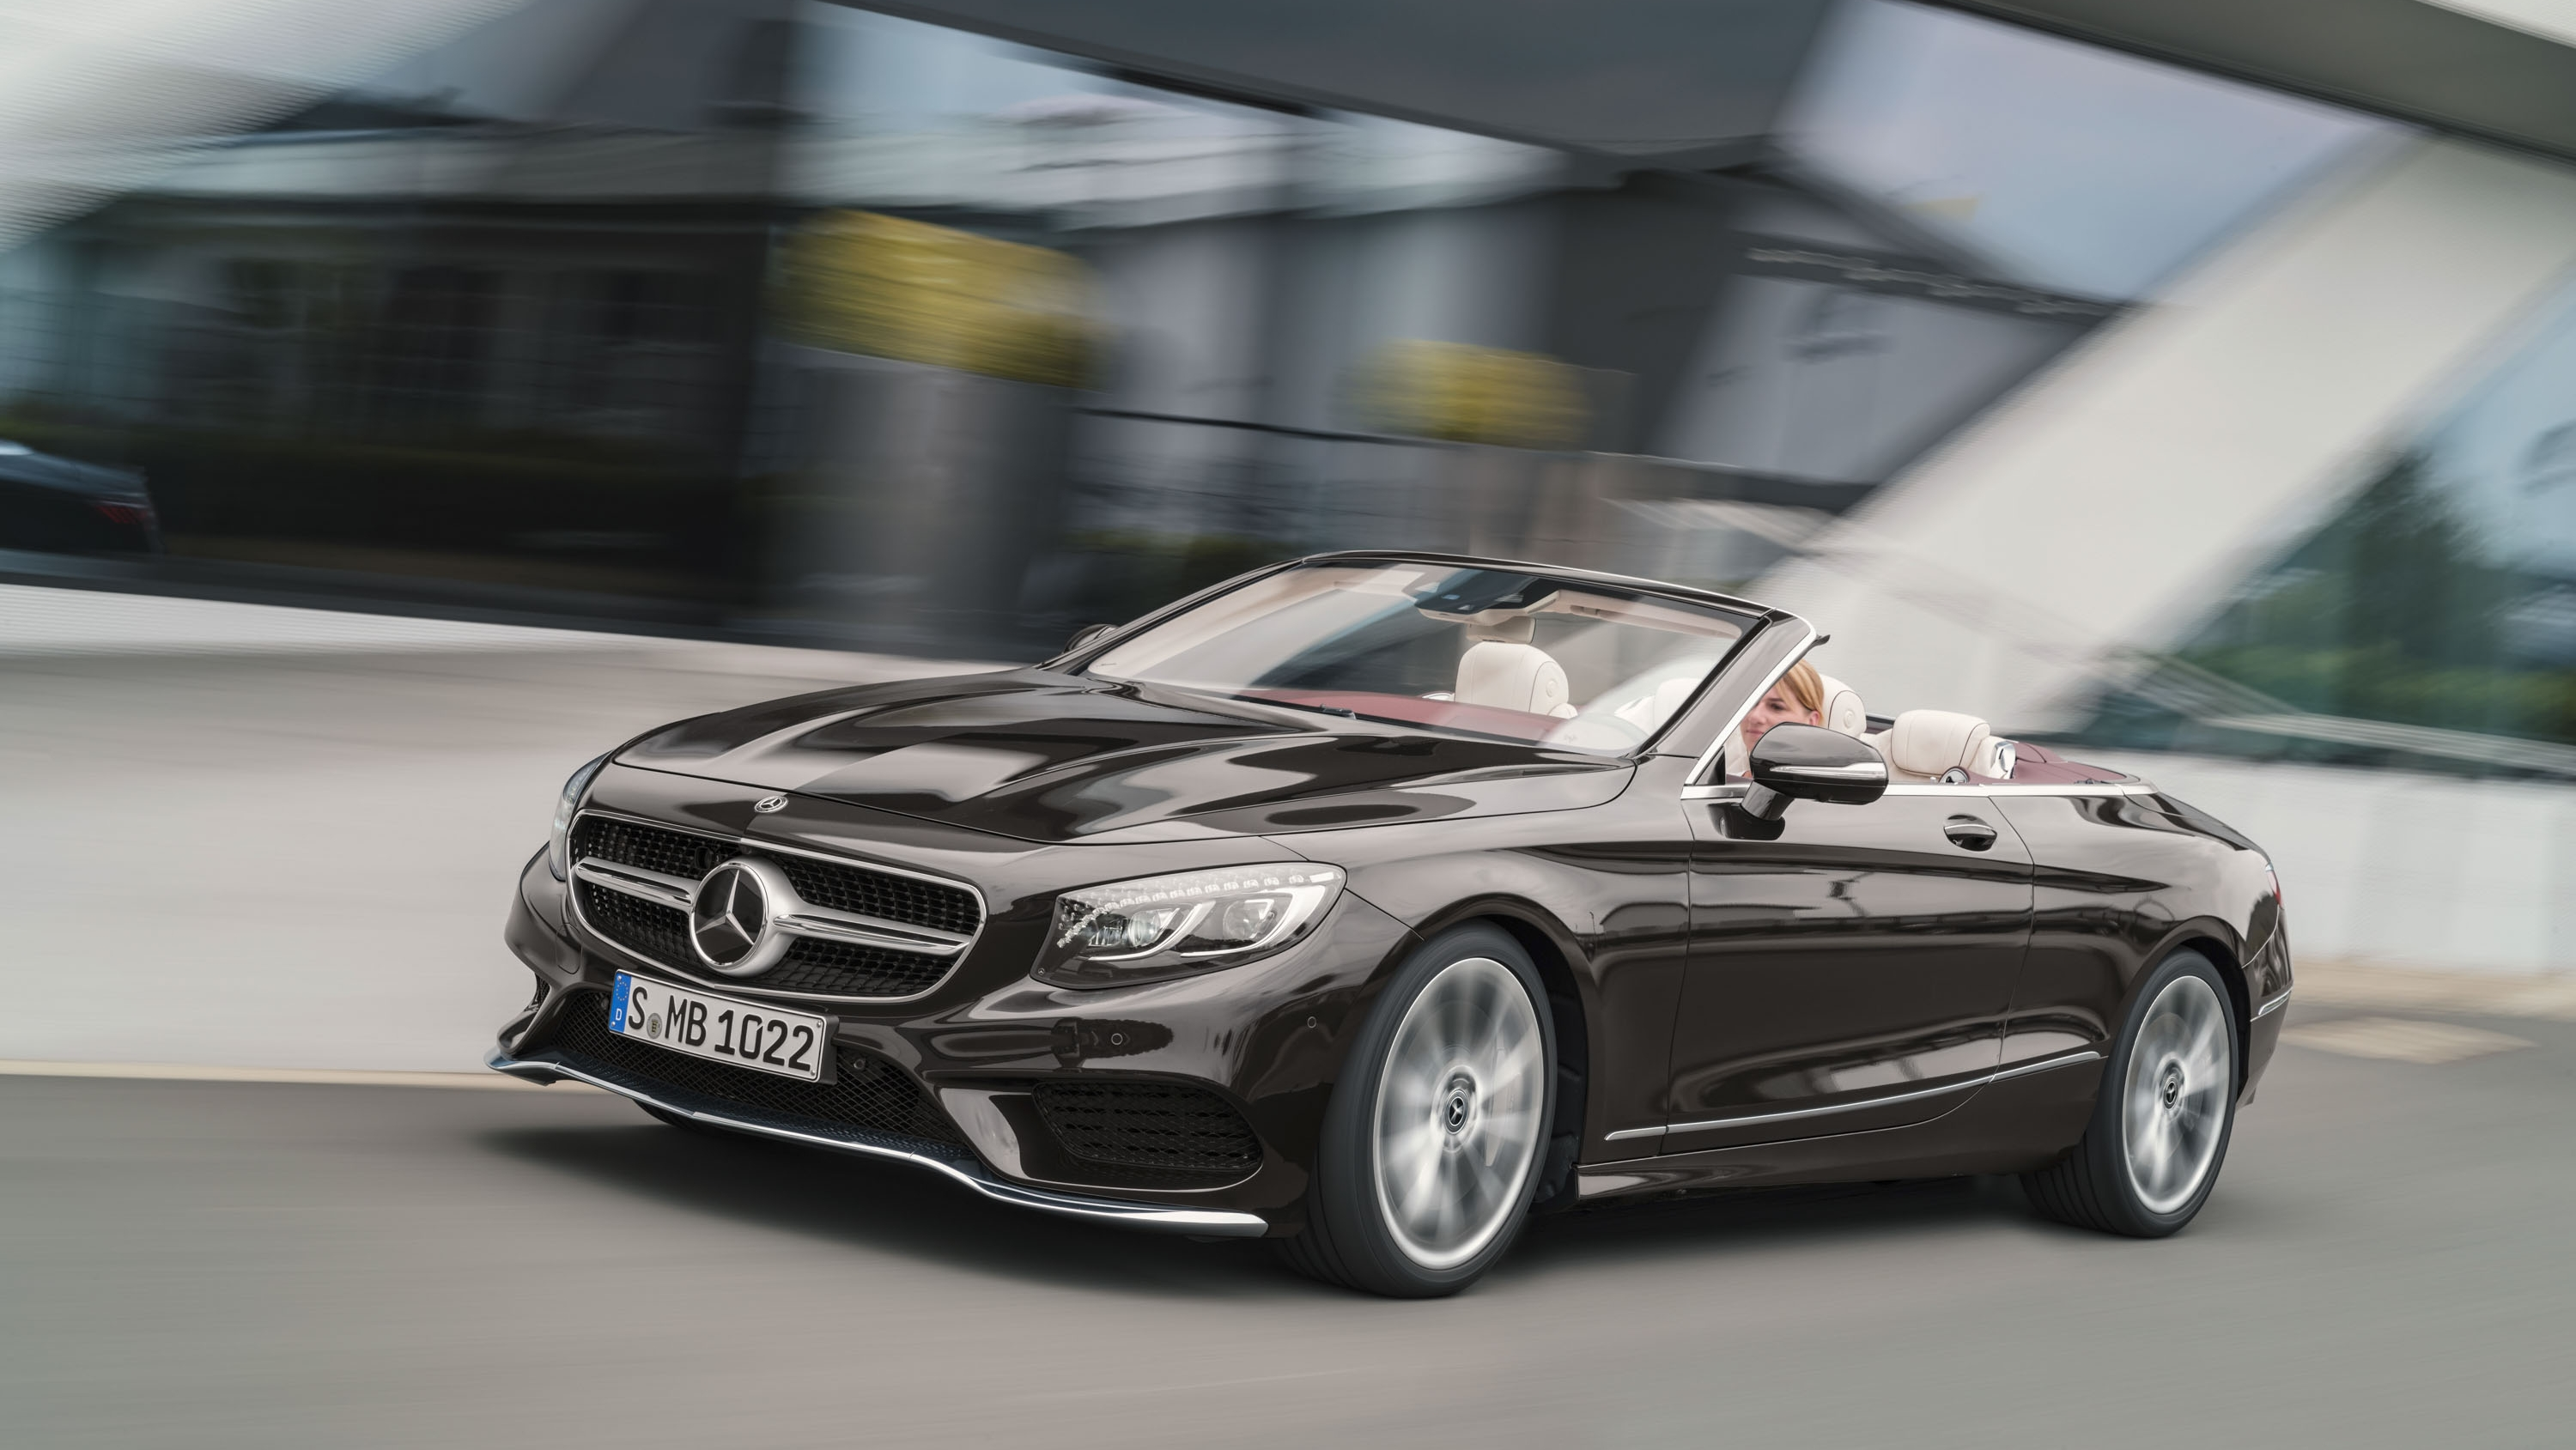 used autogespot amg clk benz cabriolet mercedes march convertible crop